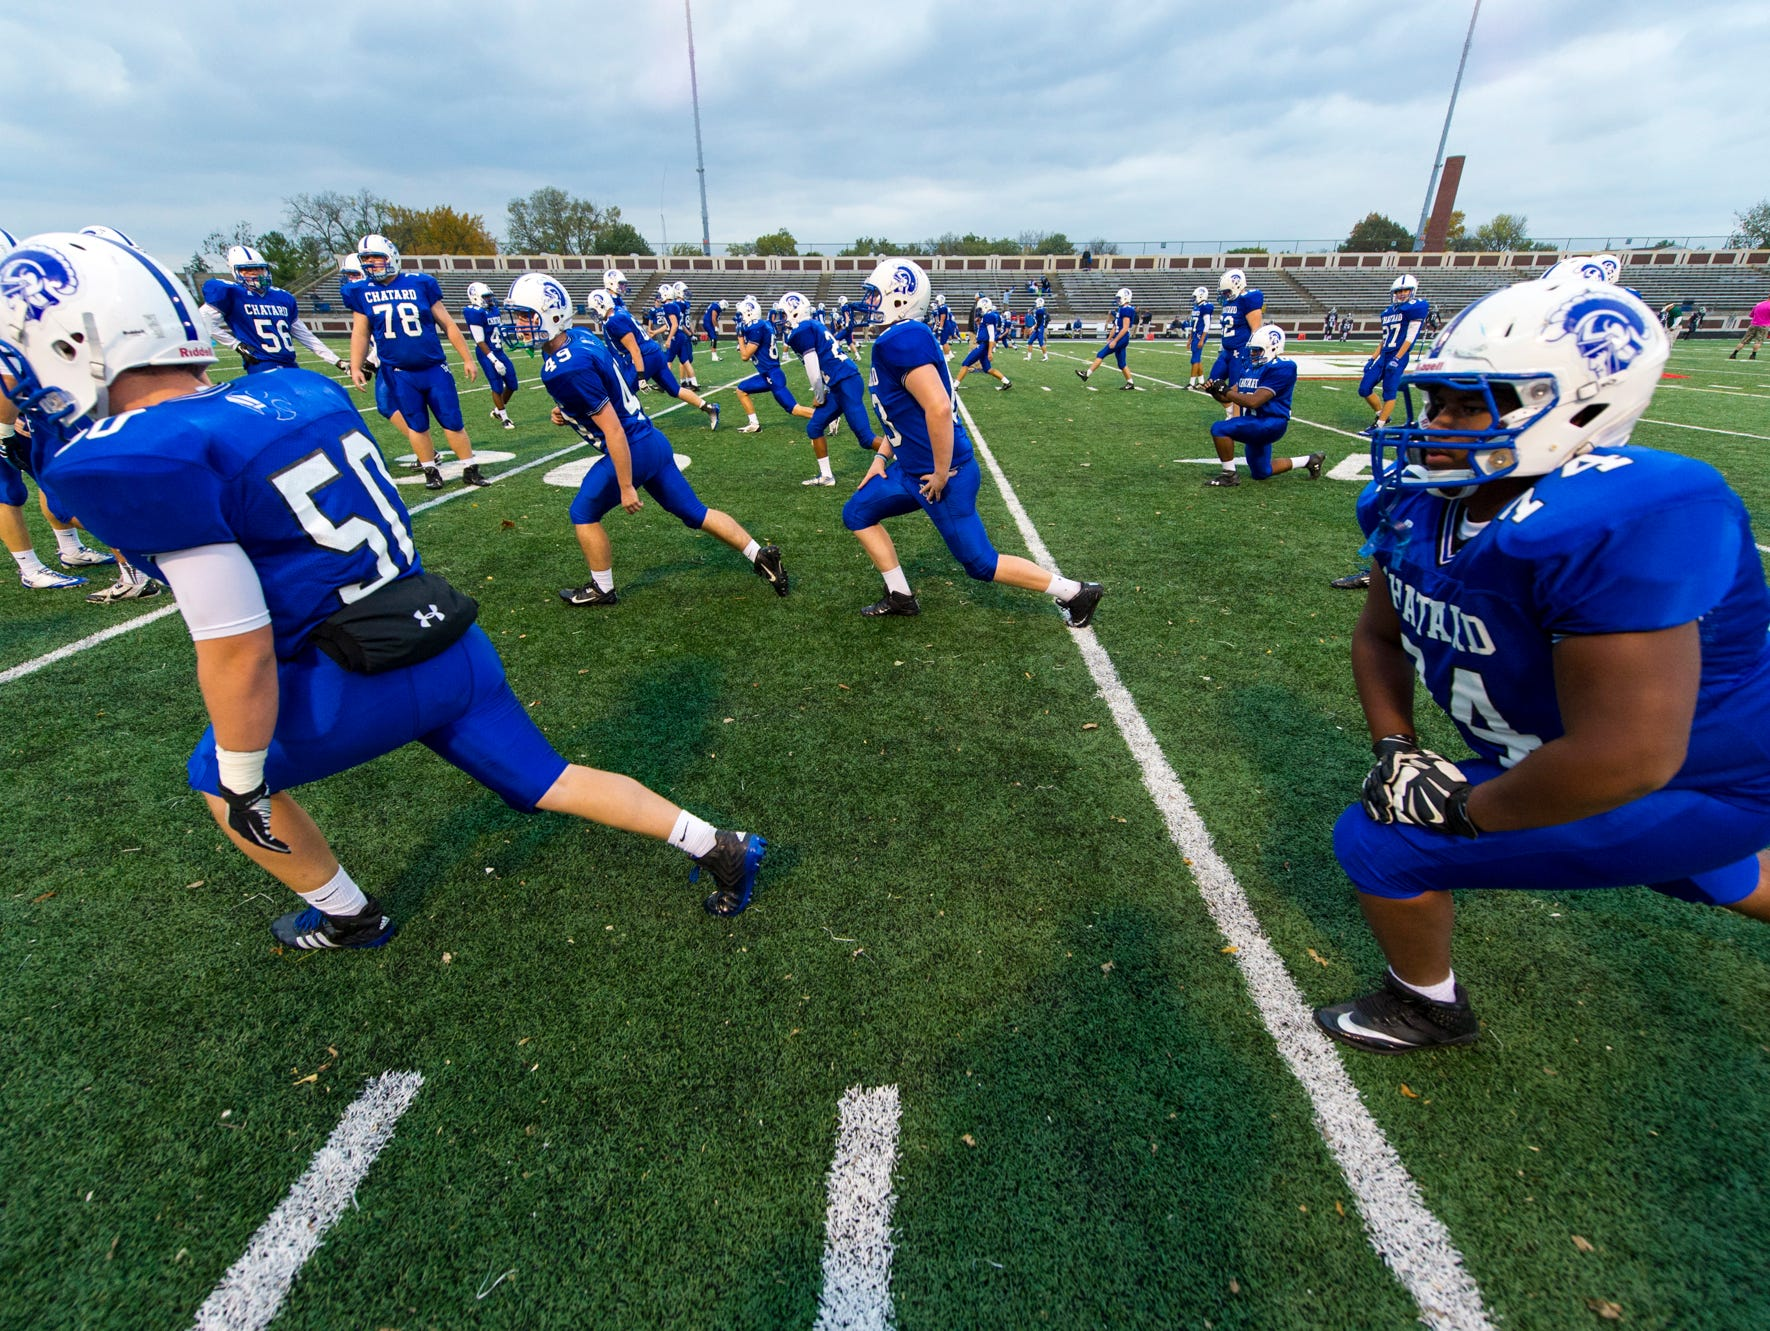 during pre-game activities. Arsenal Technical High School hosted Bishop Chatard High School, Friday, October 17, 2014, in varsity football action.